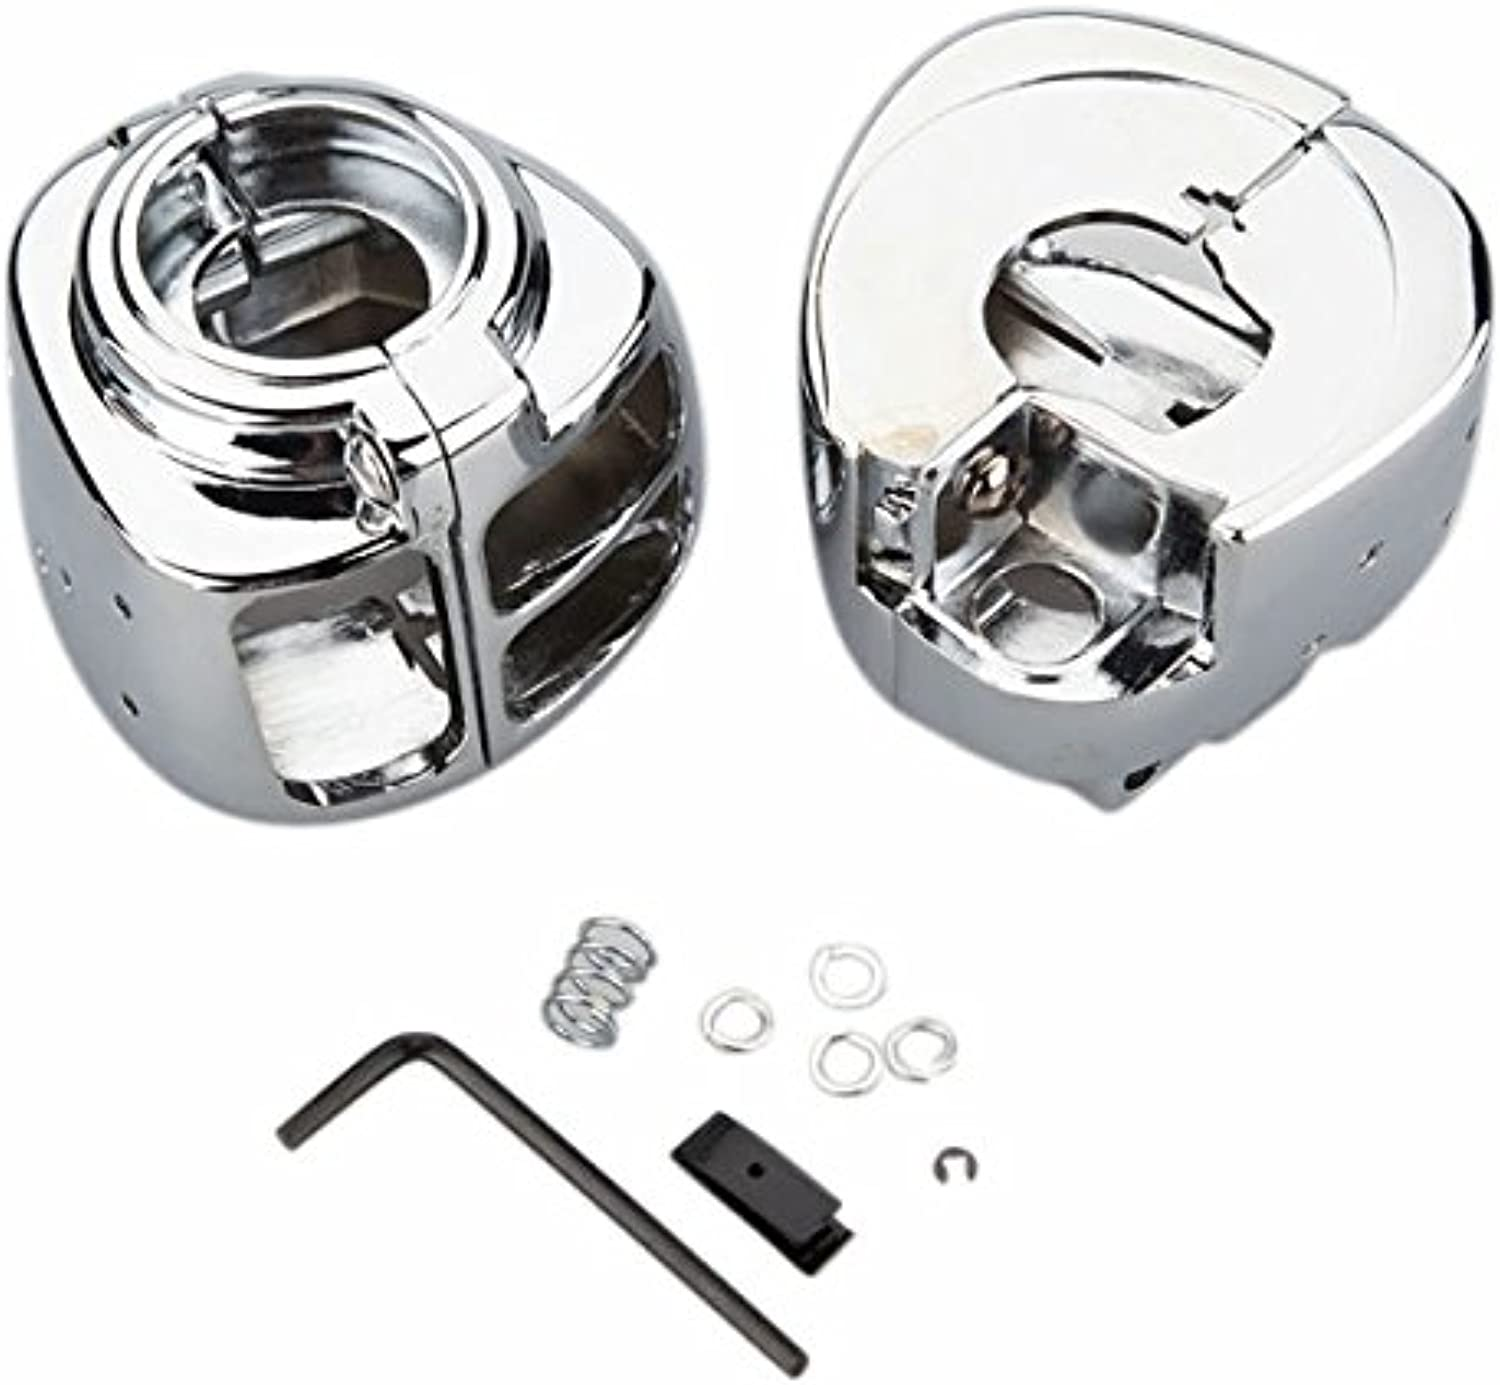 US Warehouse  Handlebar Switch Housing Replacement Kit for Harley Davidson Softail